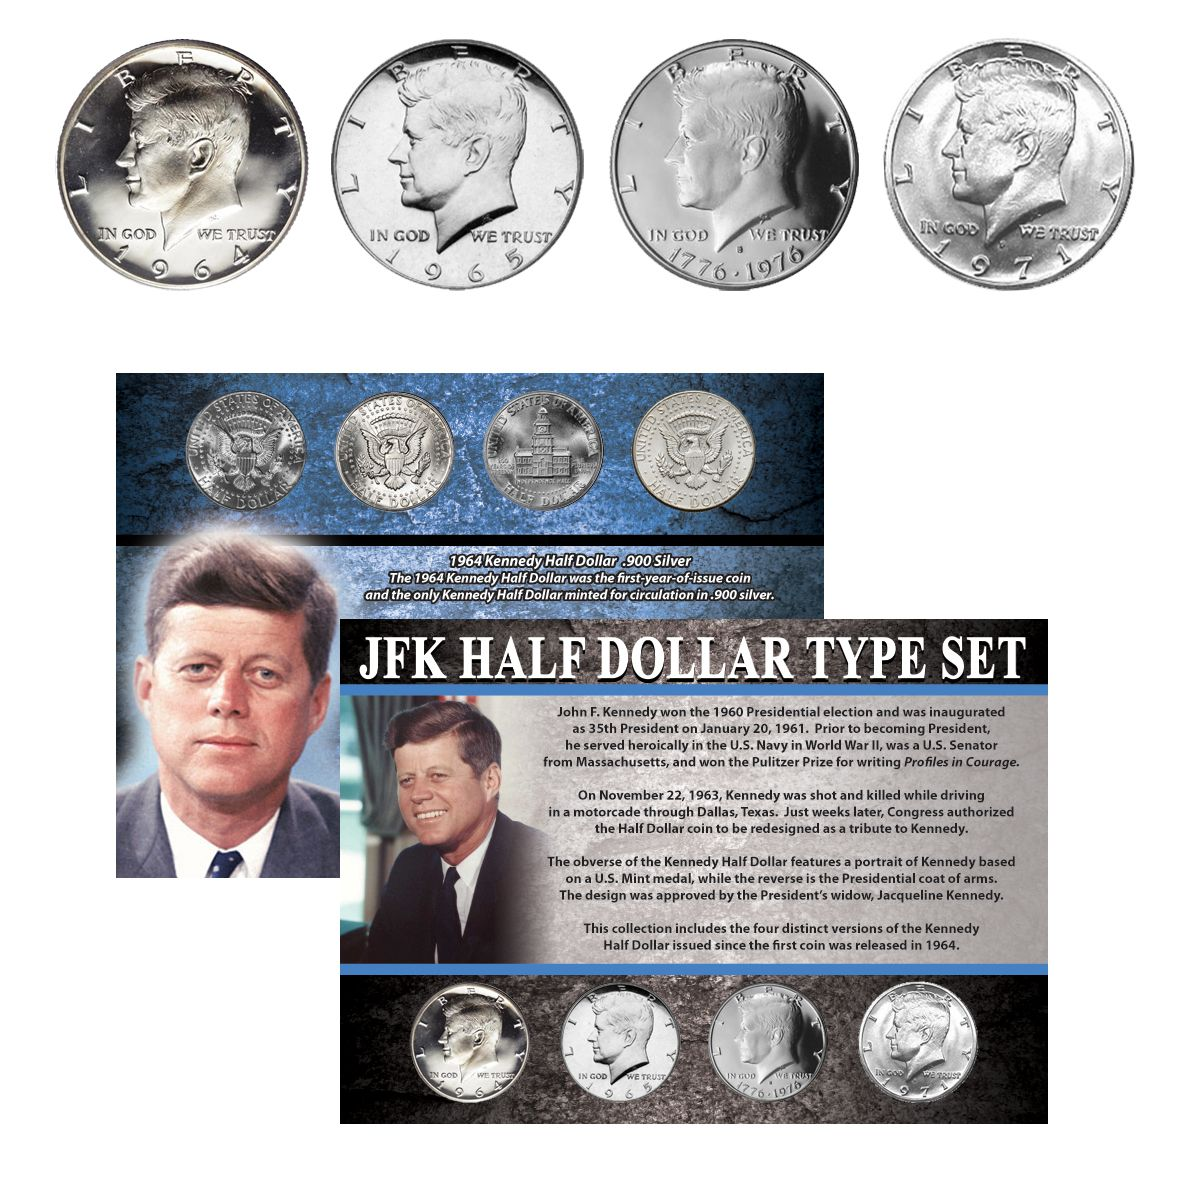 ARMY *NEW* FATHER/'S DAY Armed Forces Military JFK Half Dollar 2-Coin Set U.S